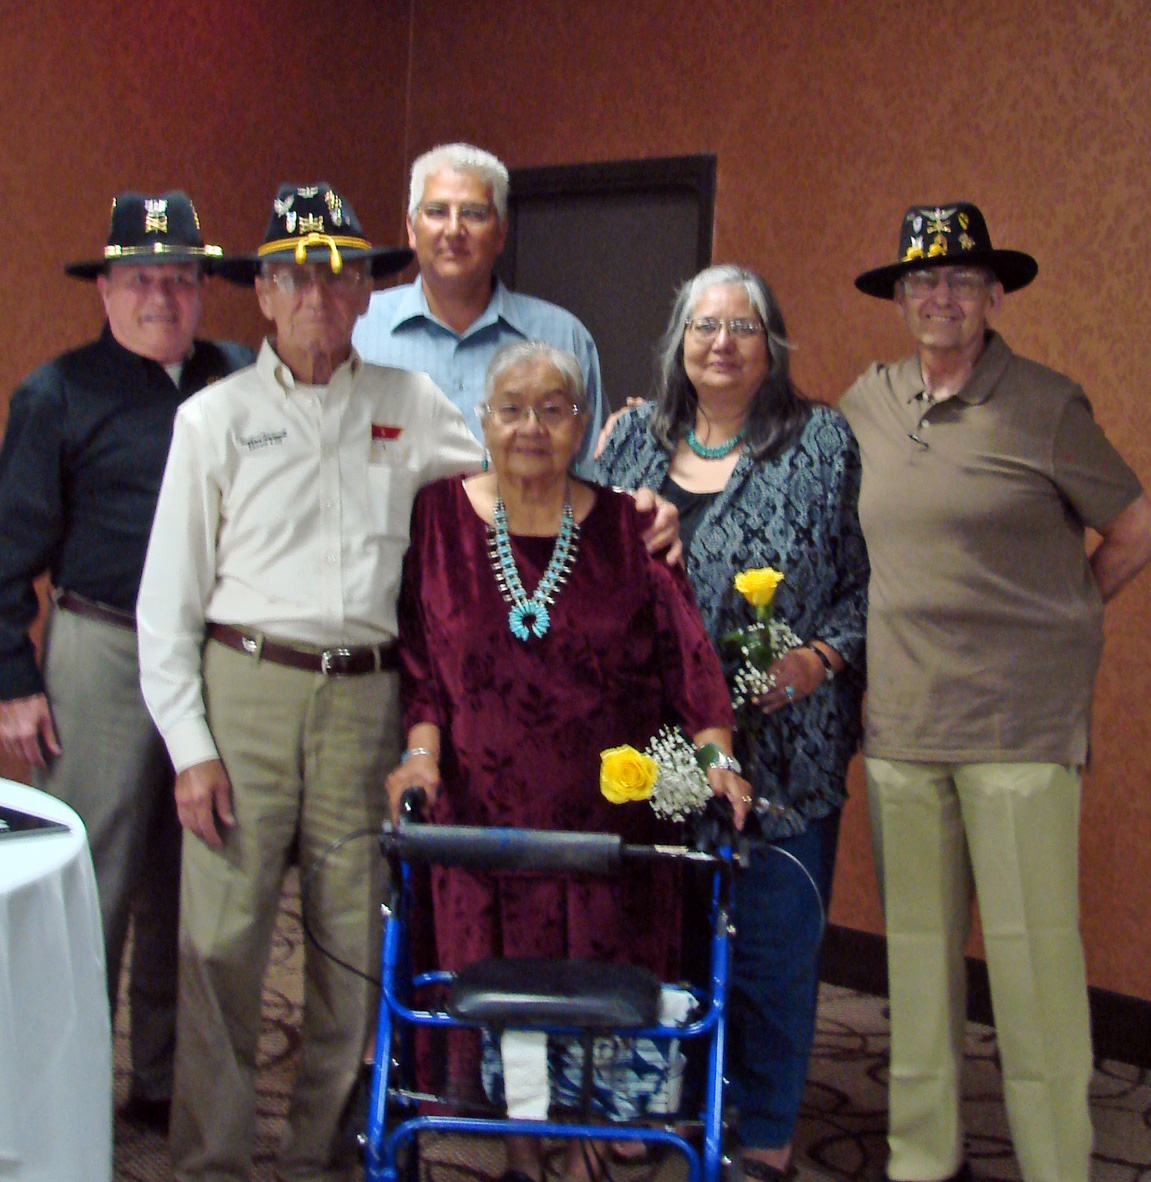 2016 Charlie Troop 1 9 Cavalry Thirsty Six Reunion